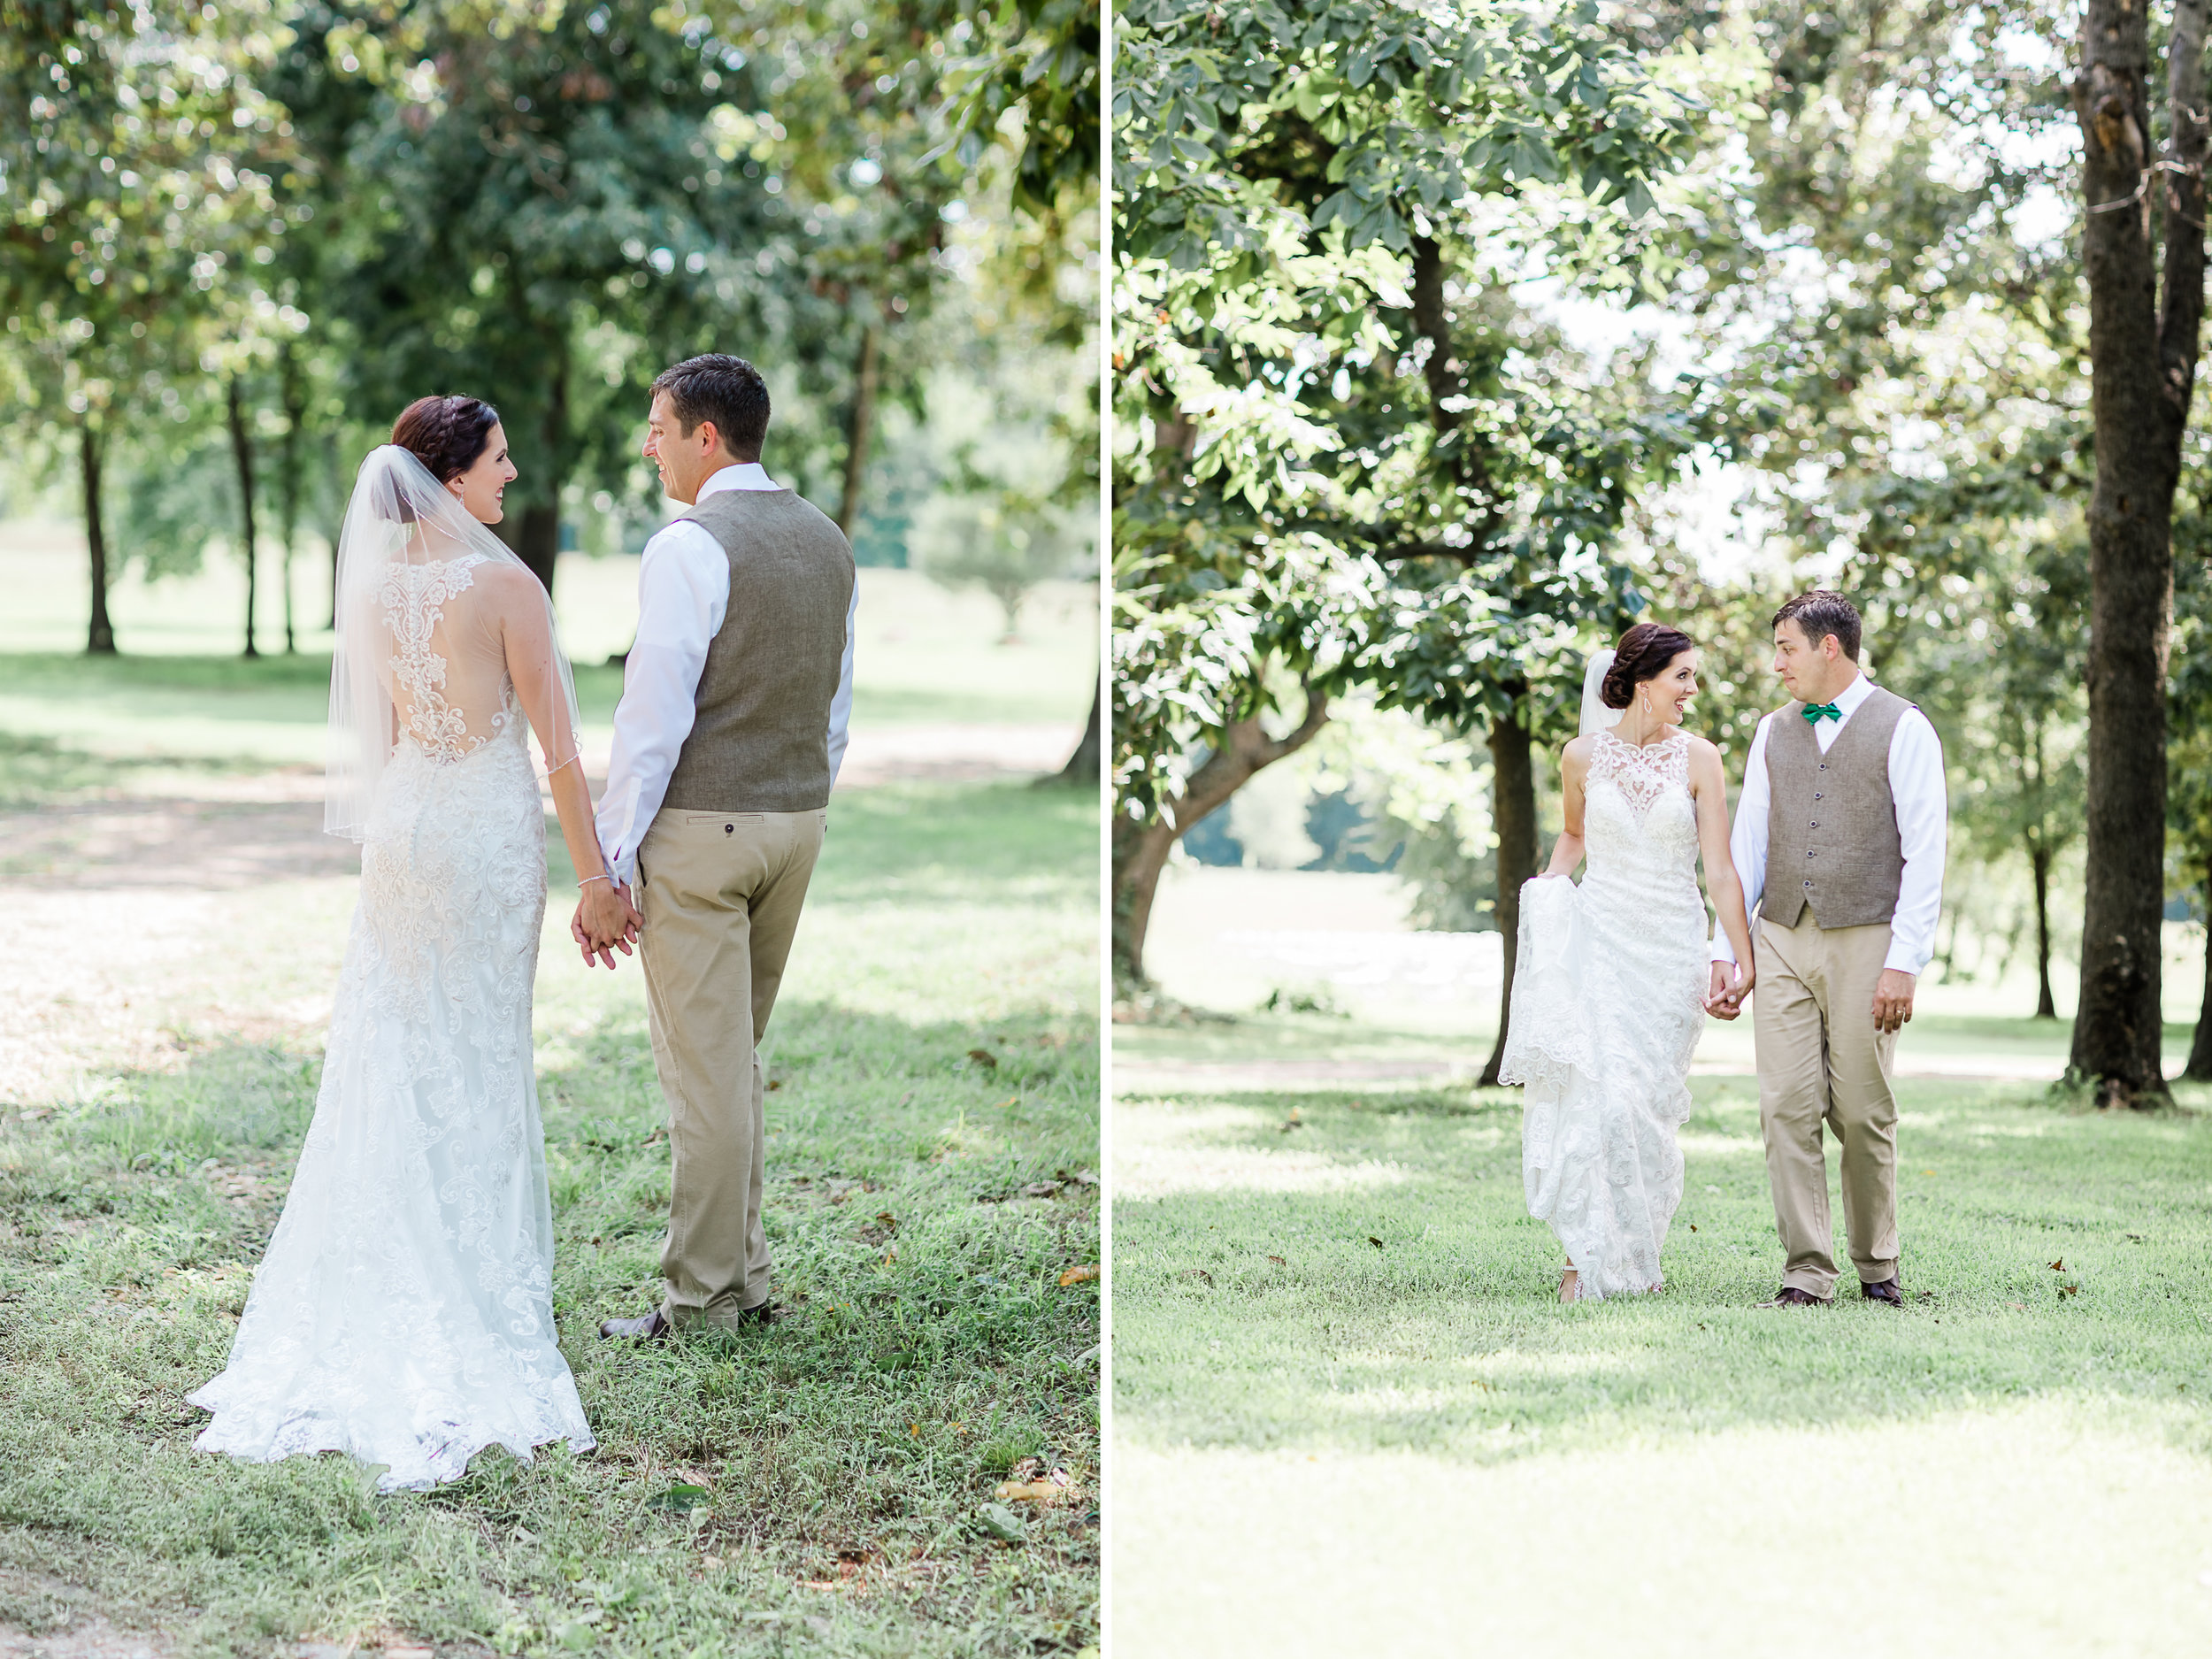 Northwest Arkansas Wedding Photographer 6.jpg